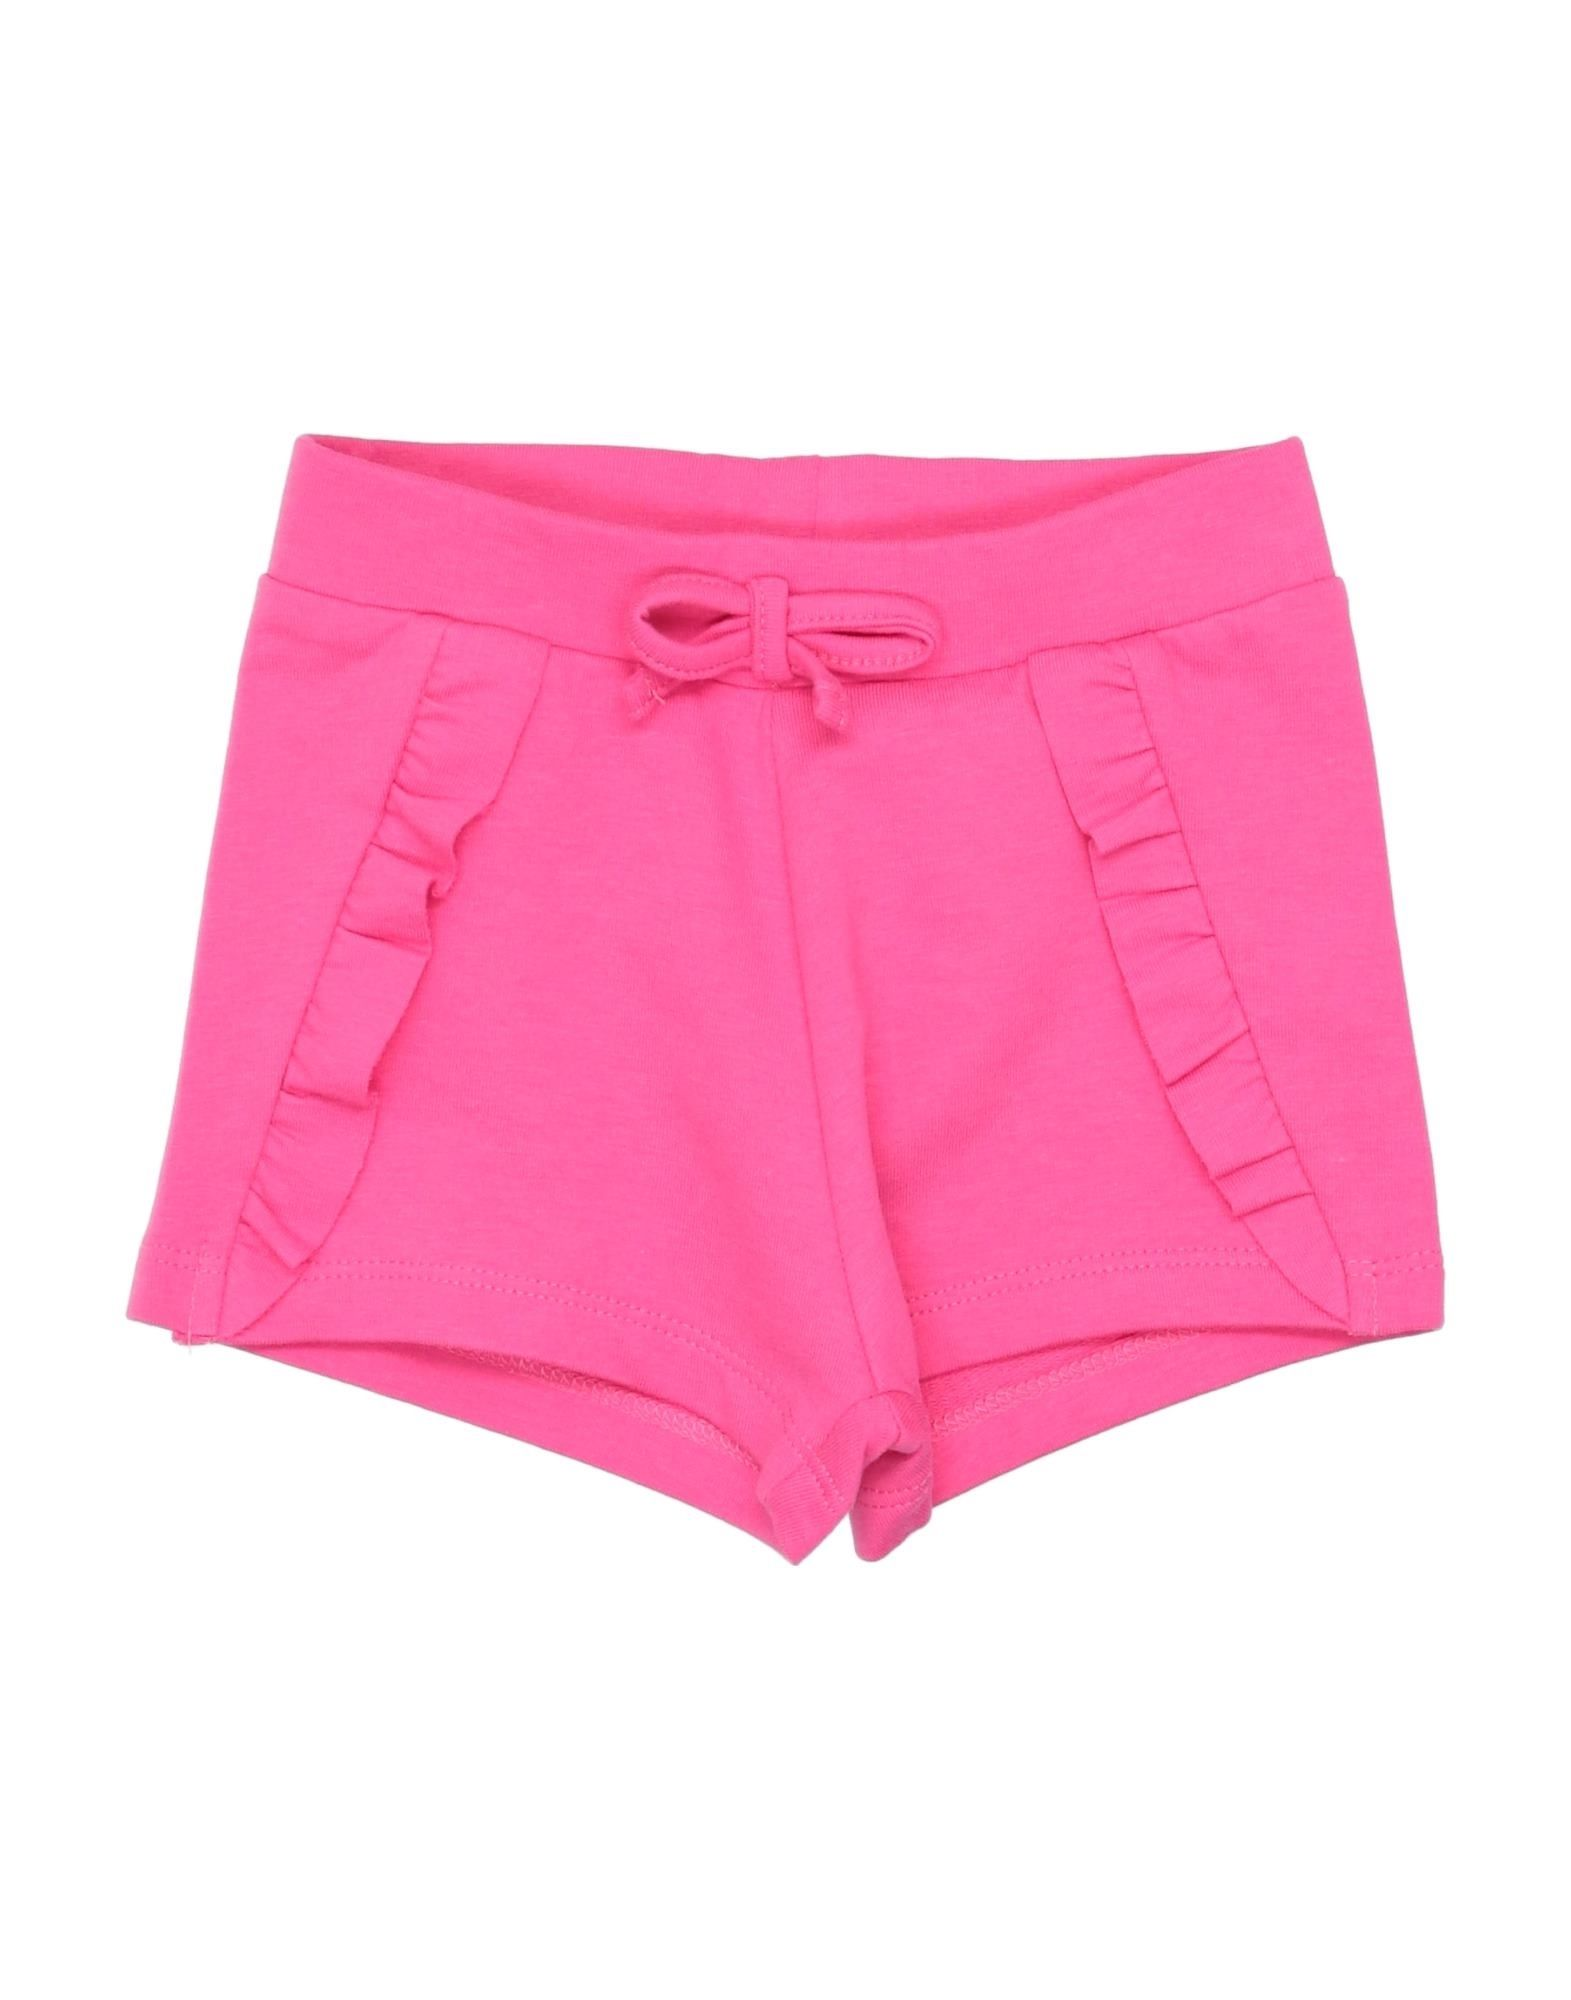 Mayoral Kids' Shorts In Pink